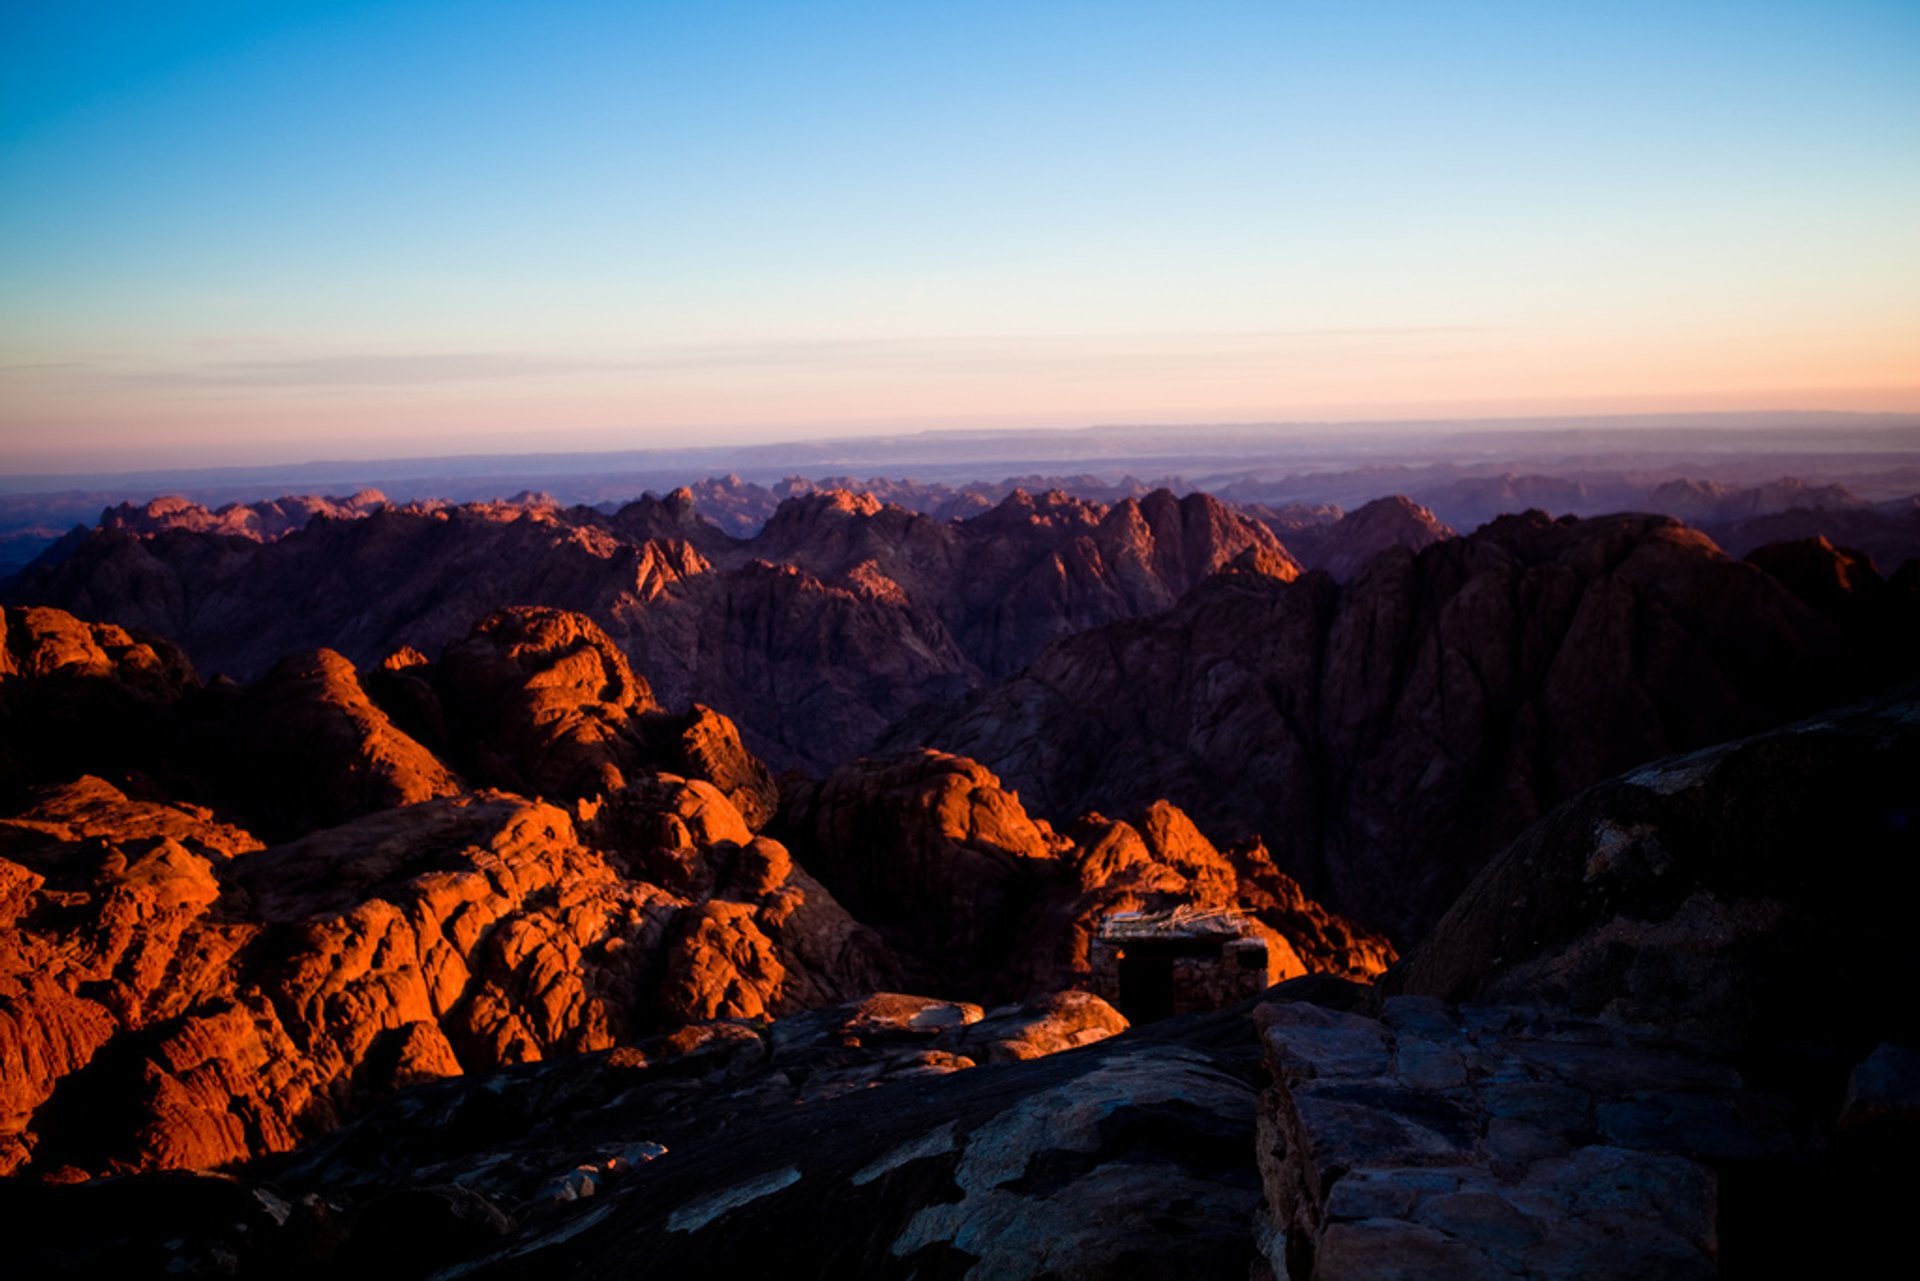 Sunrise over Mount Sinai 2020